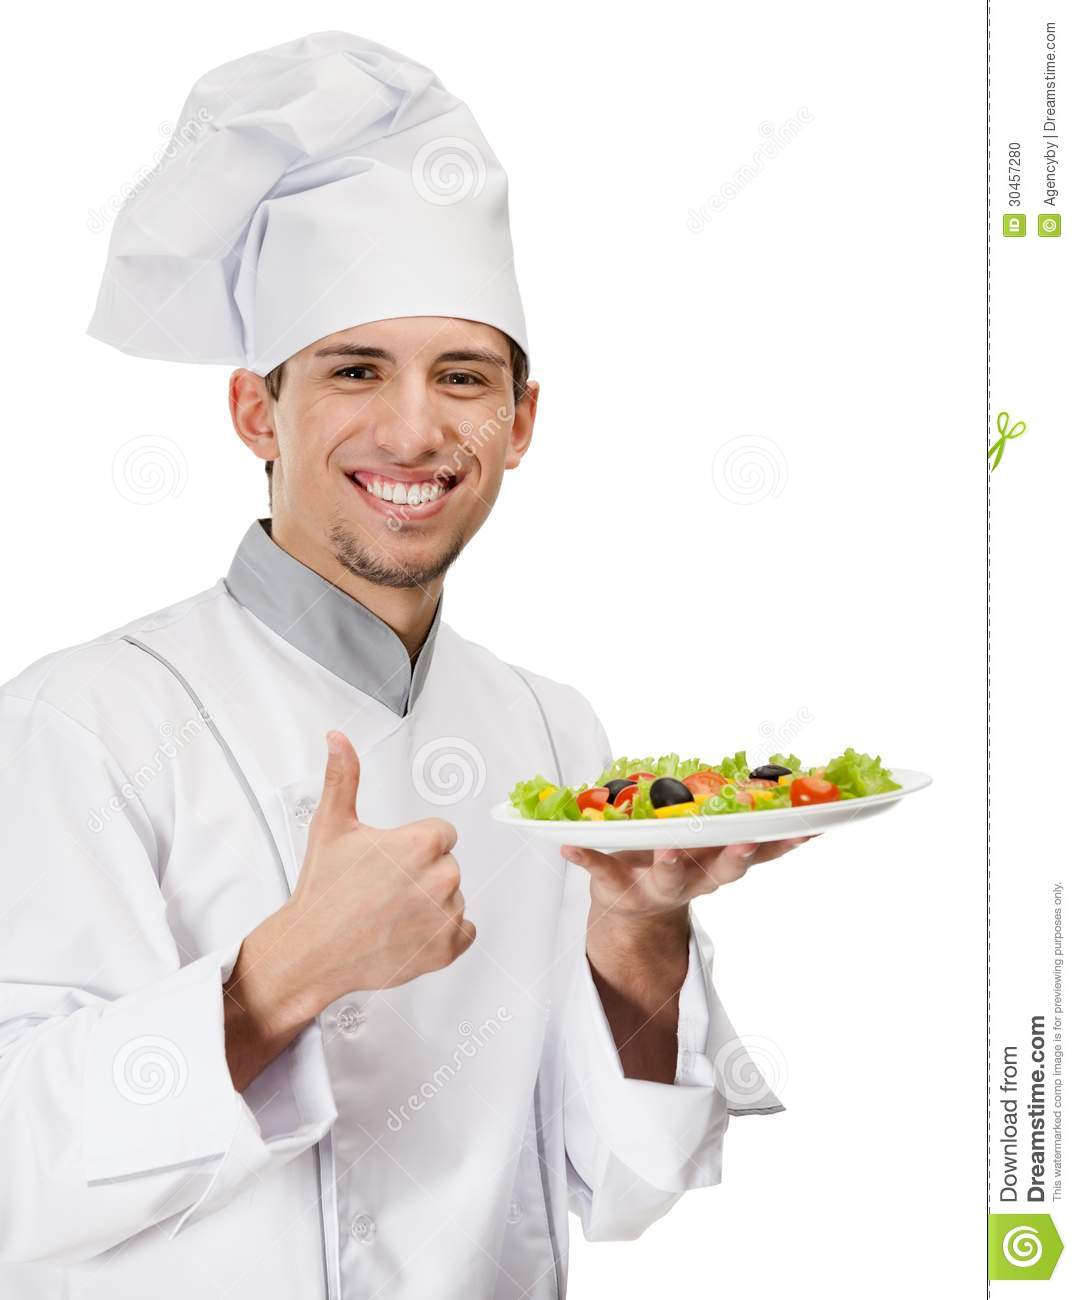 chef cook with salad dish thumbs up stock photo image of cater achievement 30457280. Black Bedroom Furniture Sets. Home Design Ideas